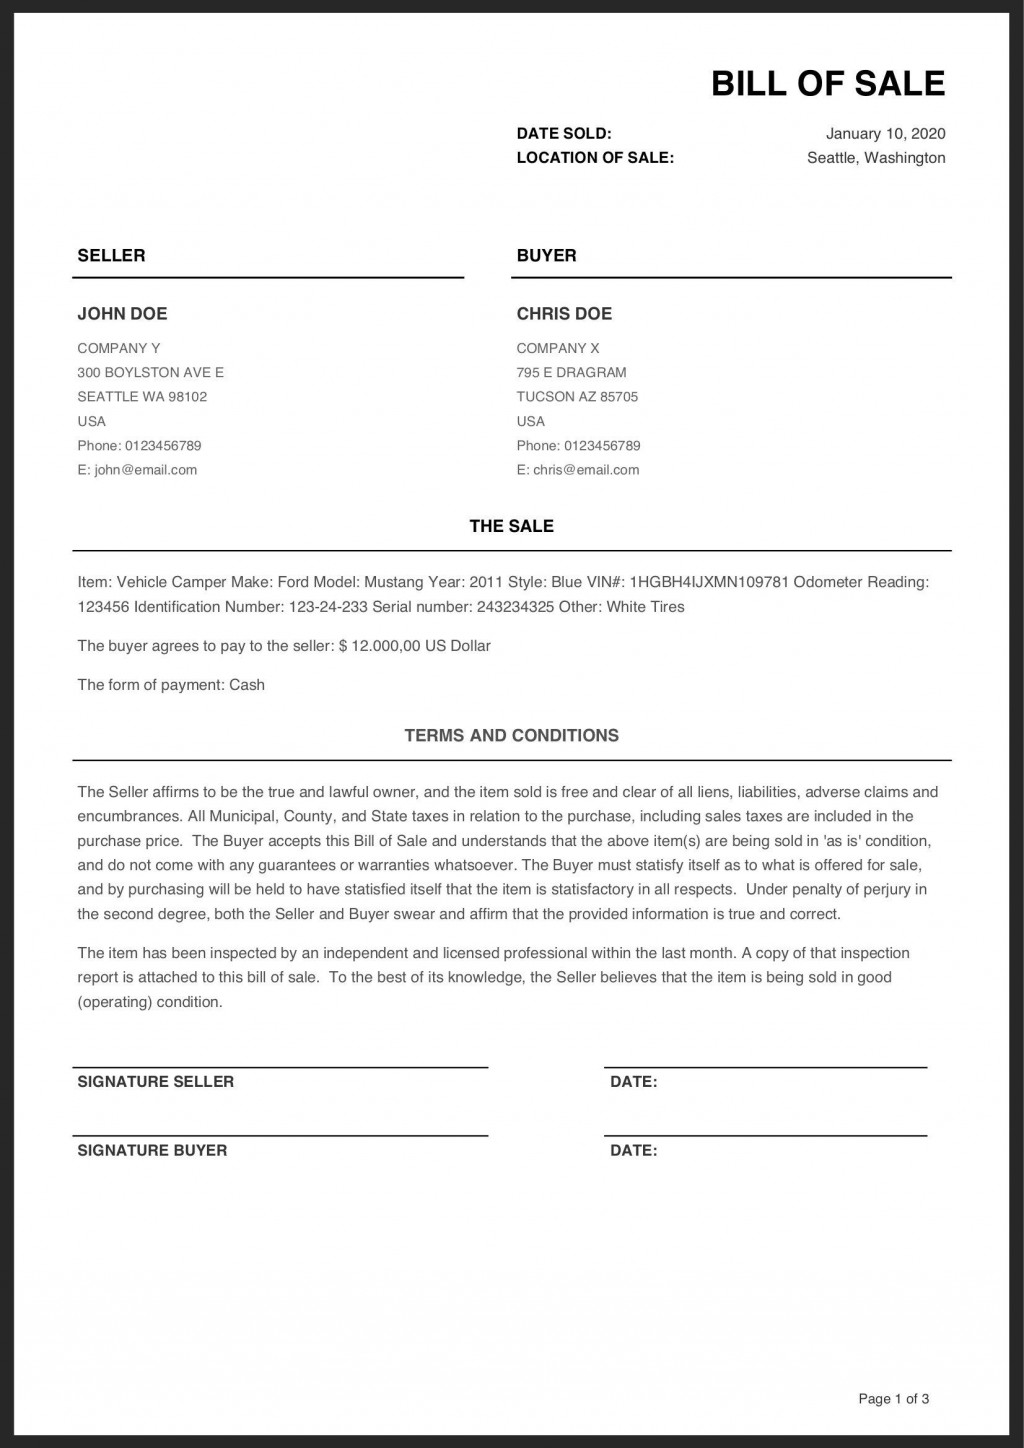 001 Awful Bill Of Sale Template Photo  Pdf Dmv MachineryLarge